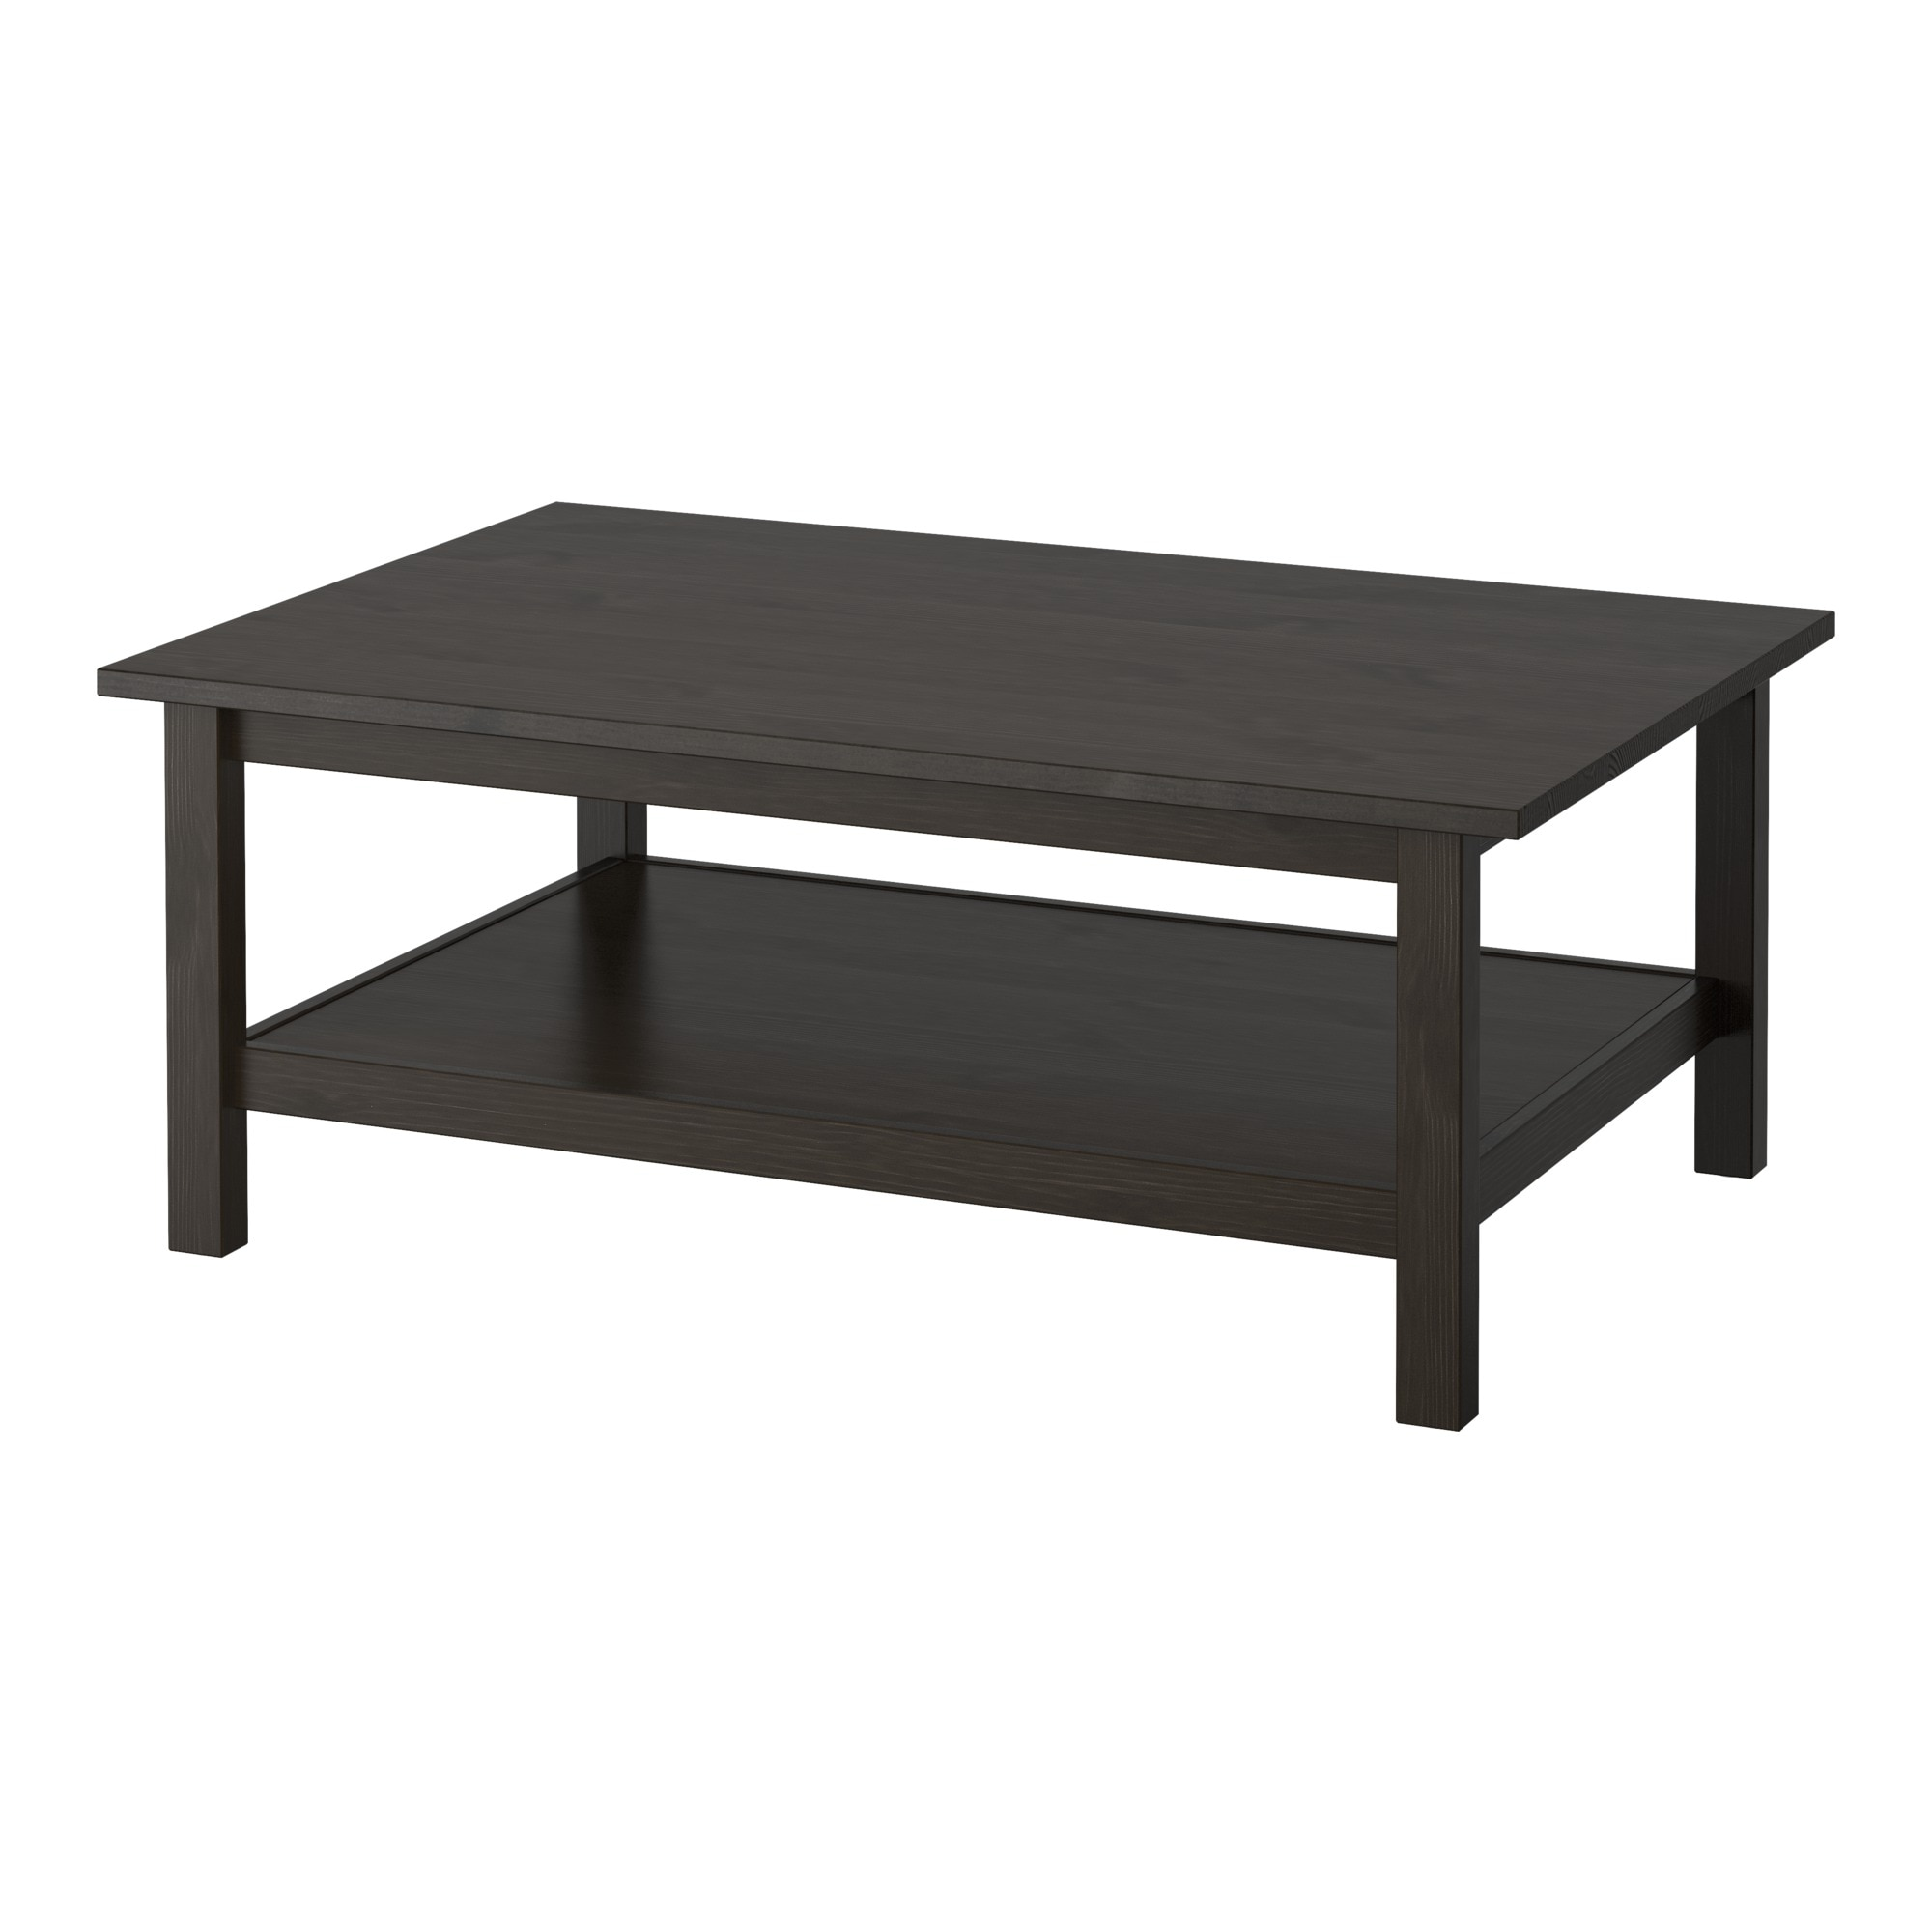 Tables Basses Et Tables D Appoint Ikea # Table Basse En Verre Tele